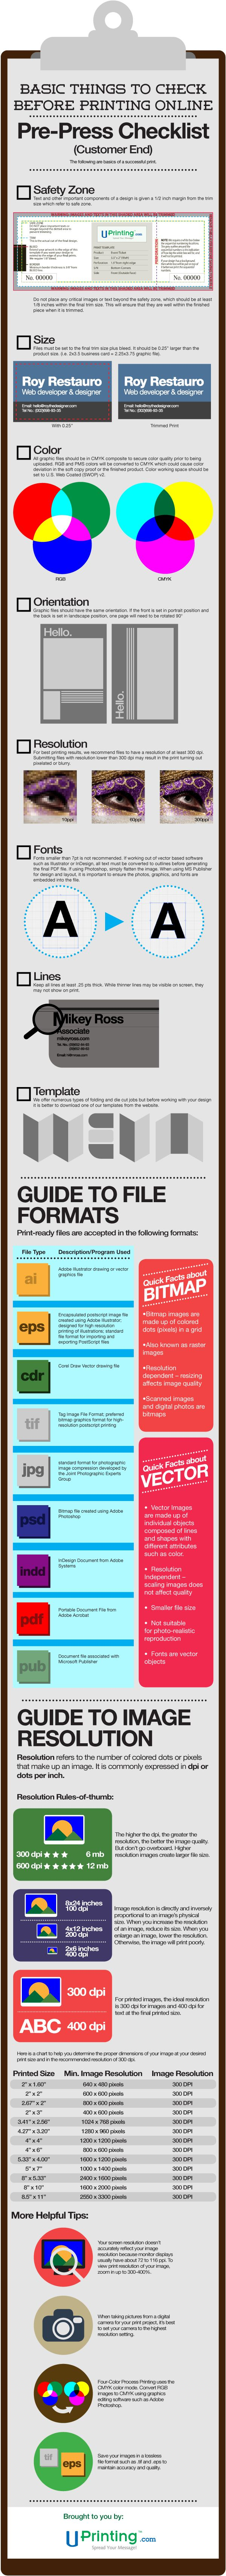 Basic Things to Check Before Printing #infographic